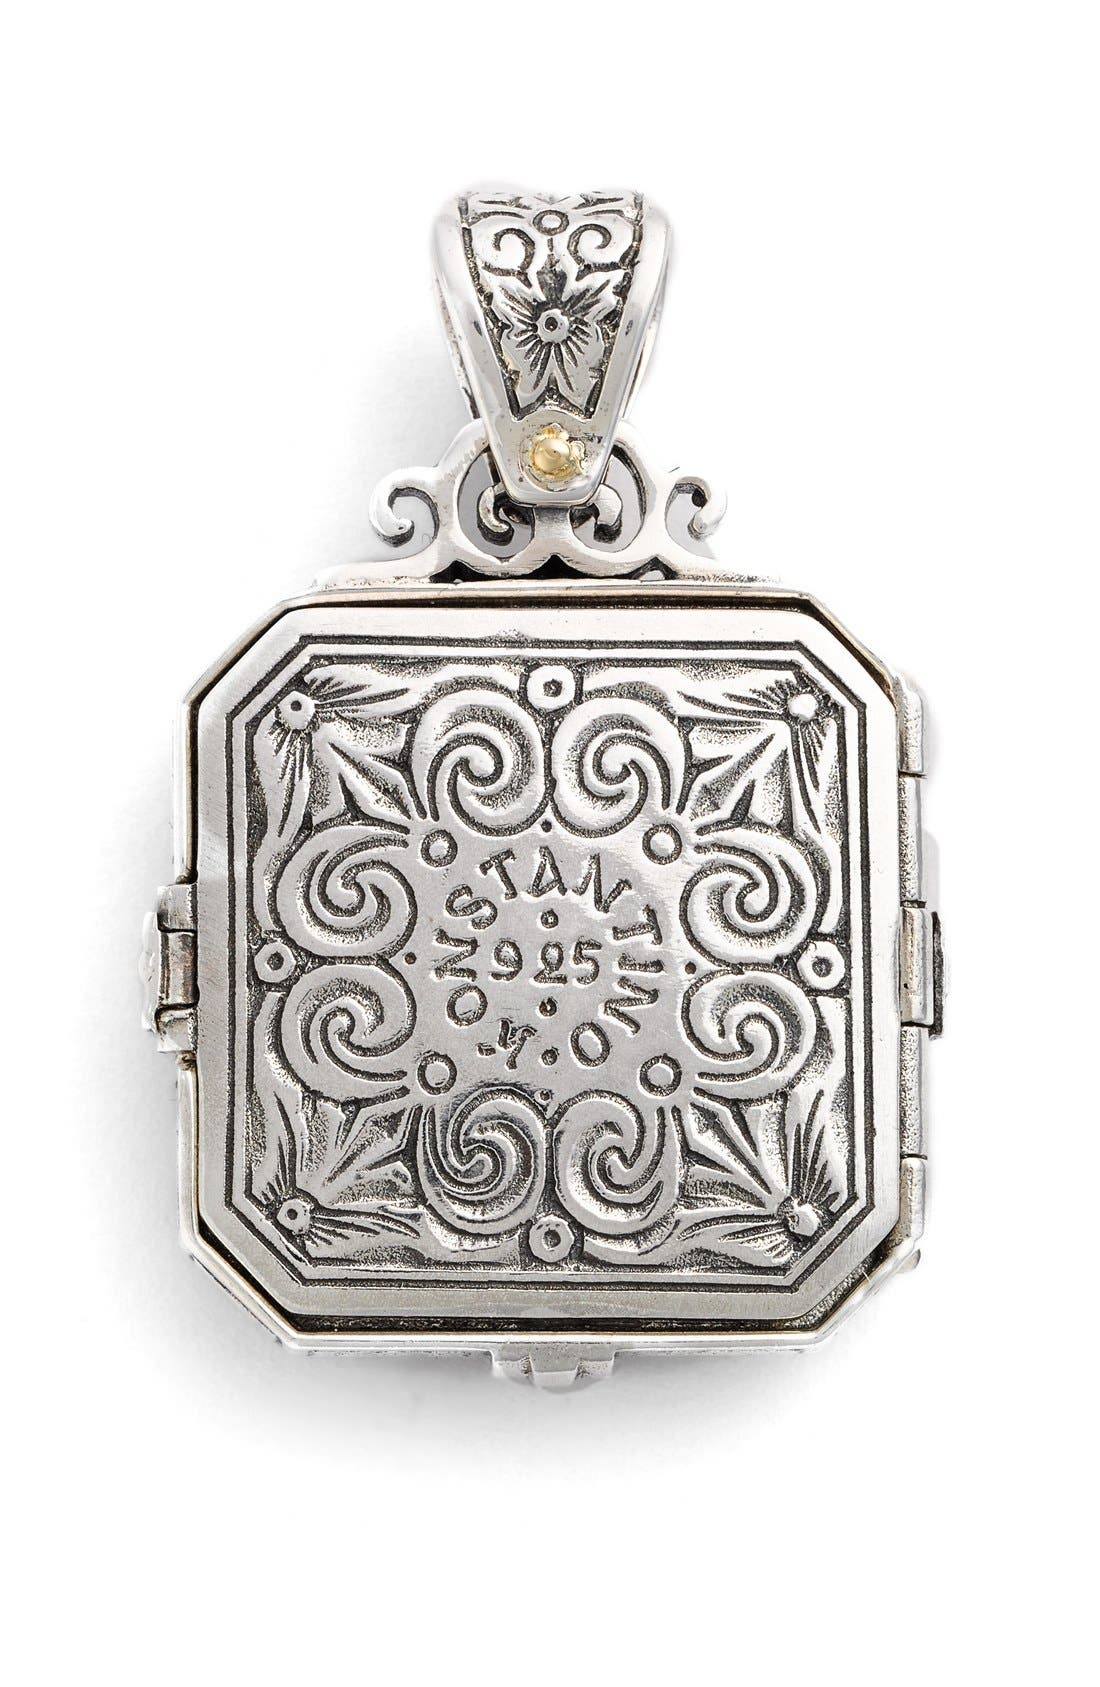 'Penelope' Bee Locket Pendant,                             Alternate thumbnail 3, color,                             SILVER/ GOLD